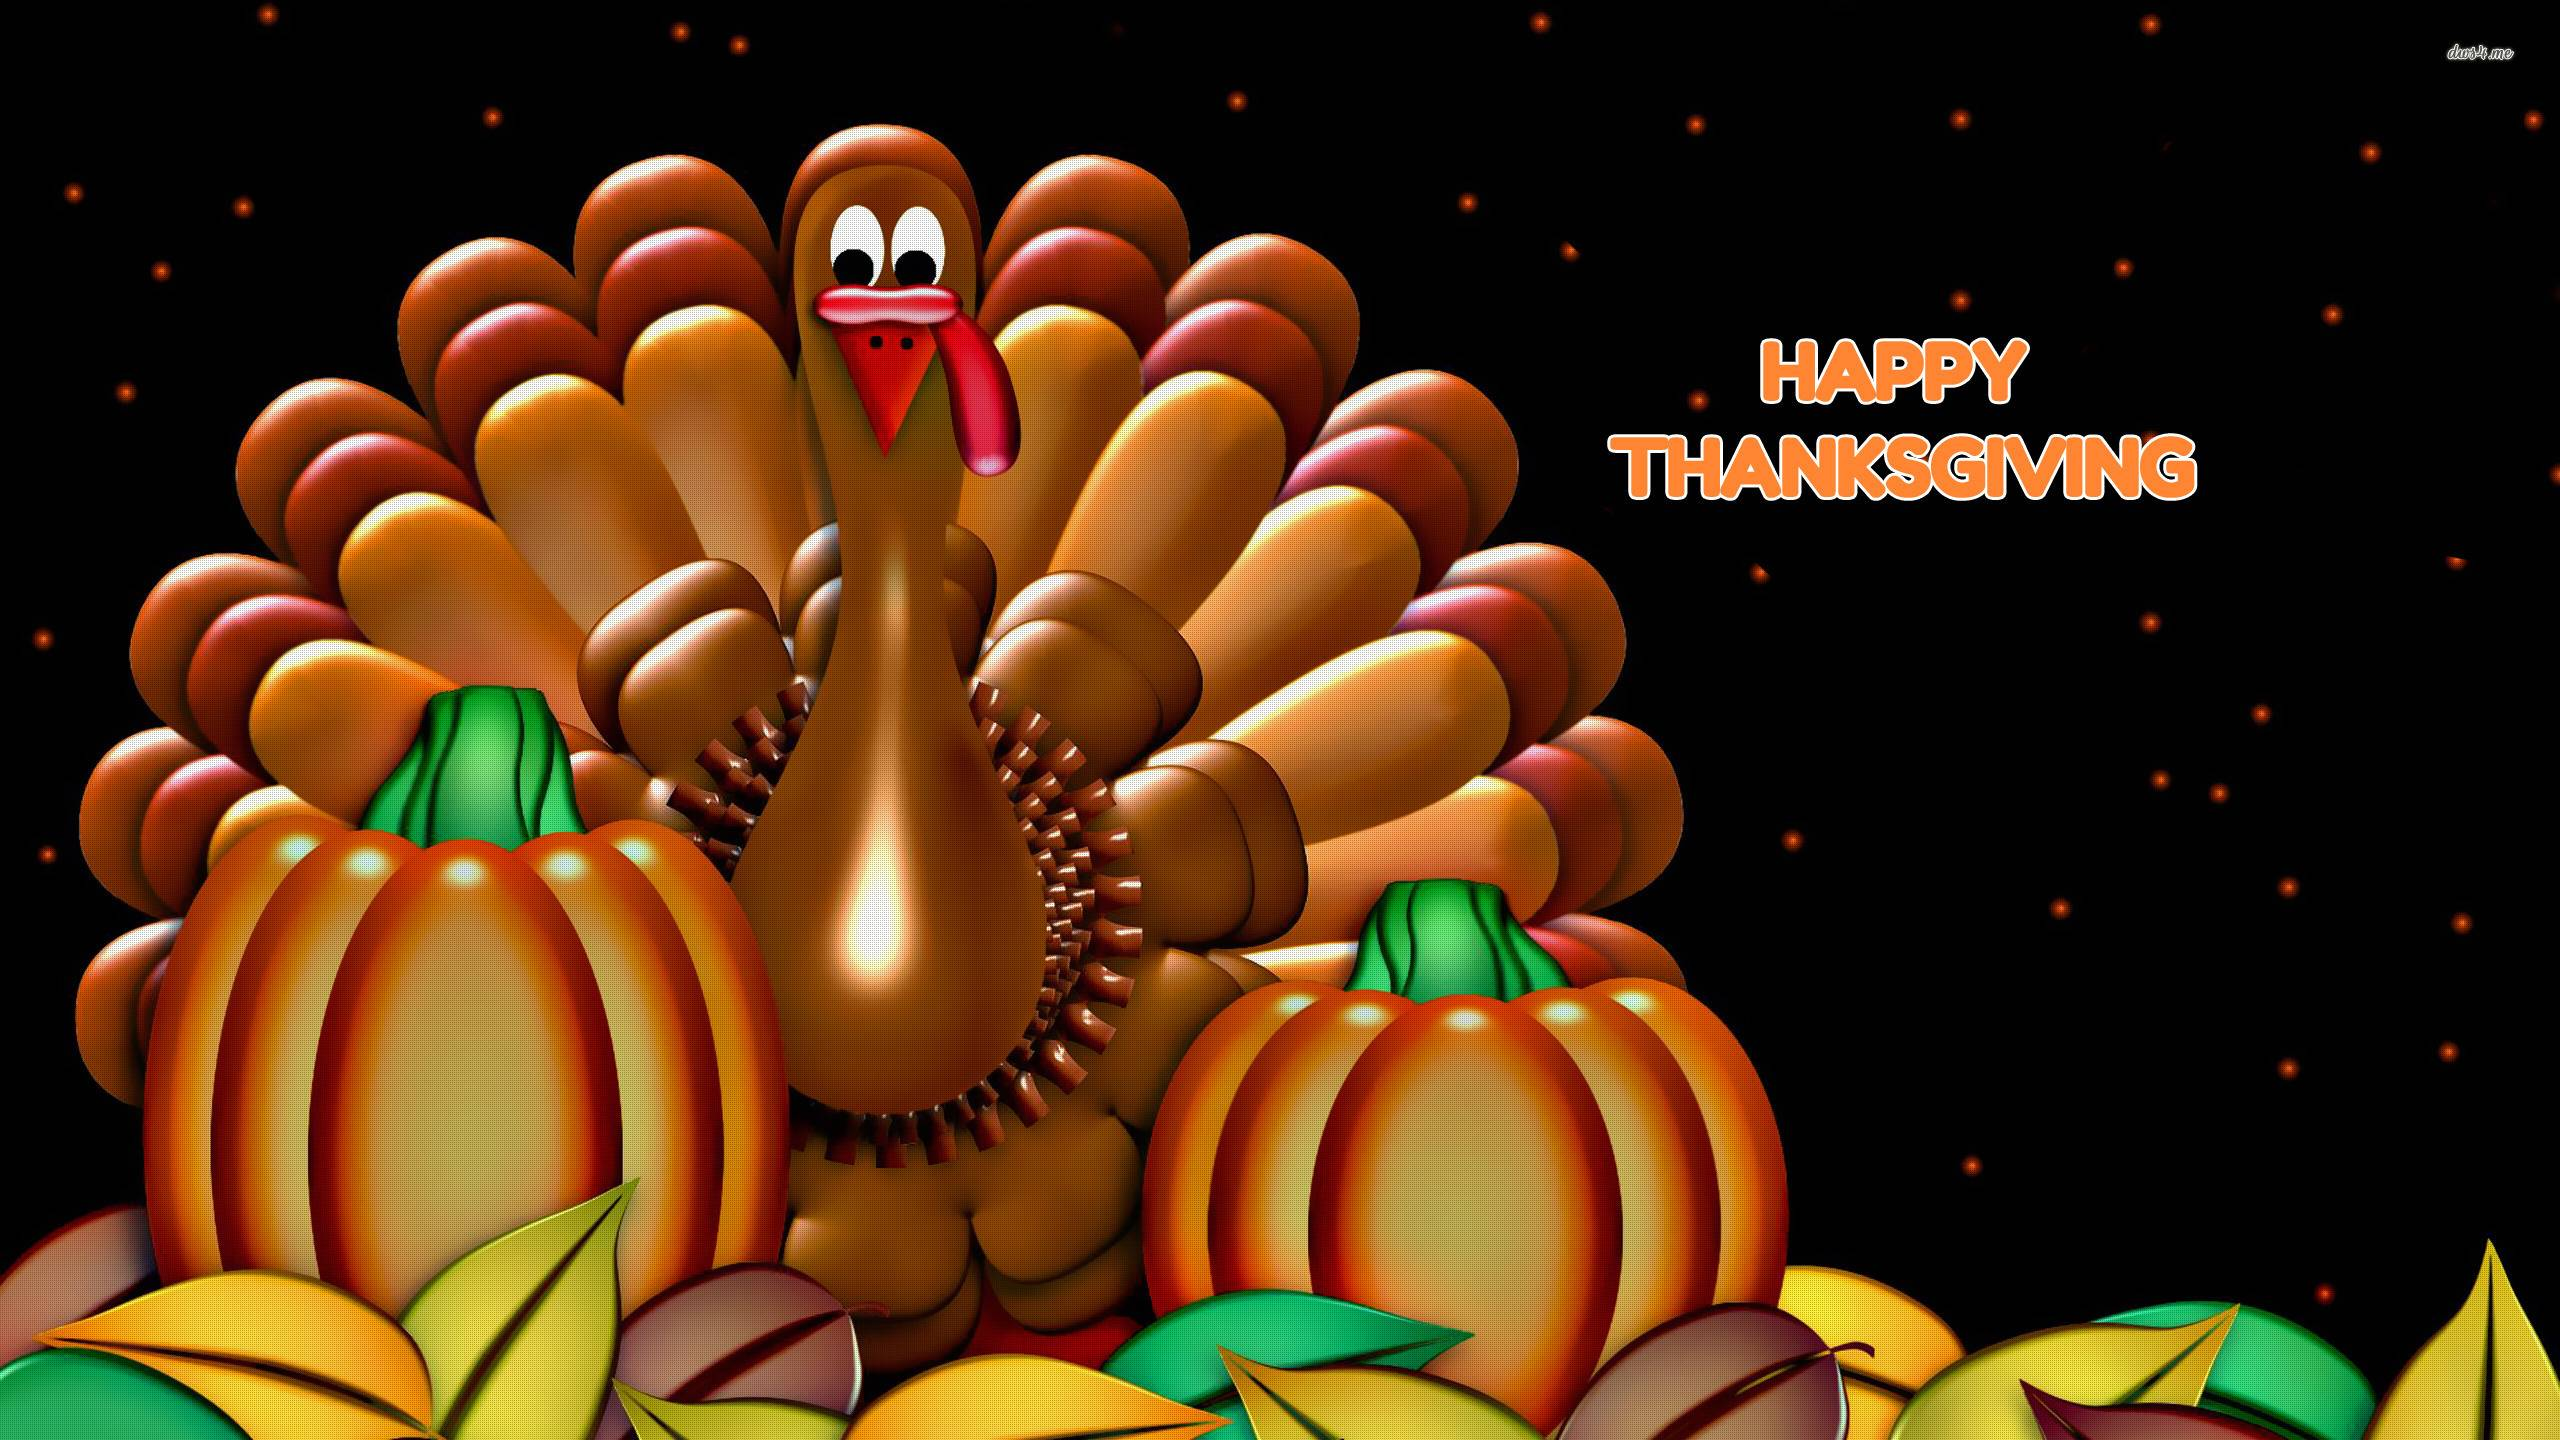 Desktop Wallpaper Thanksgiving Www